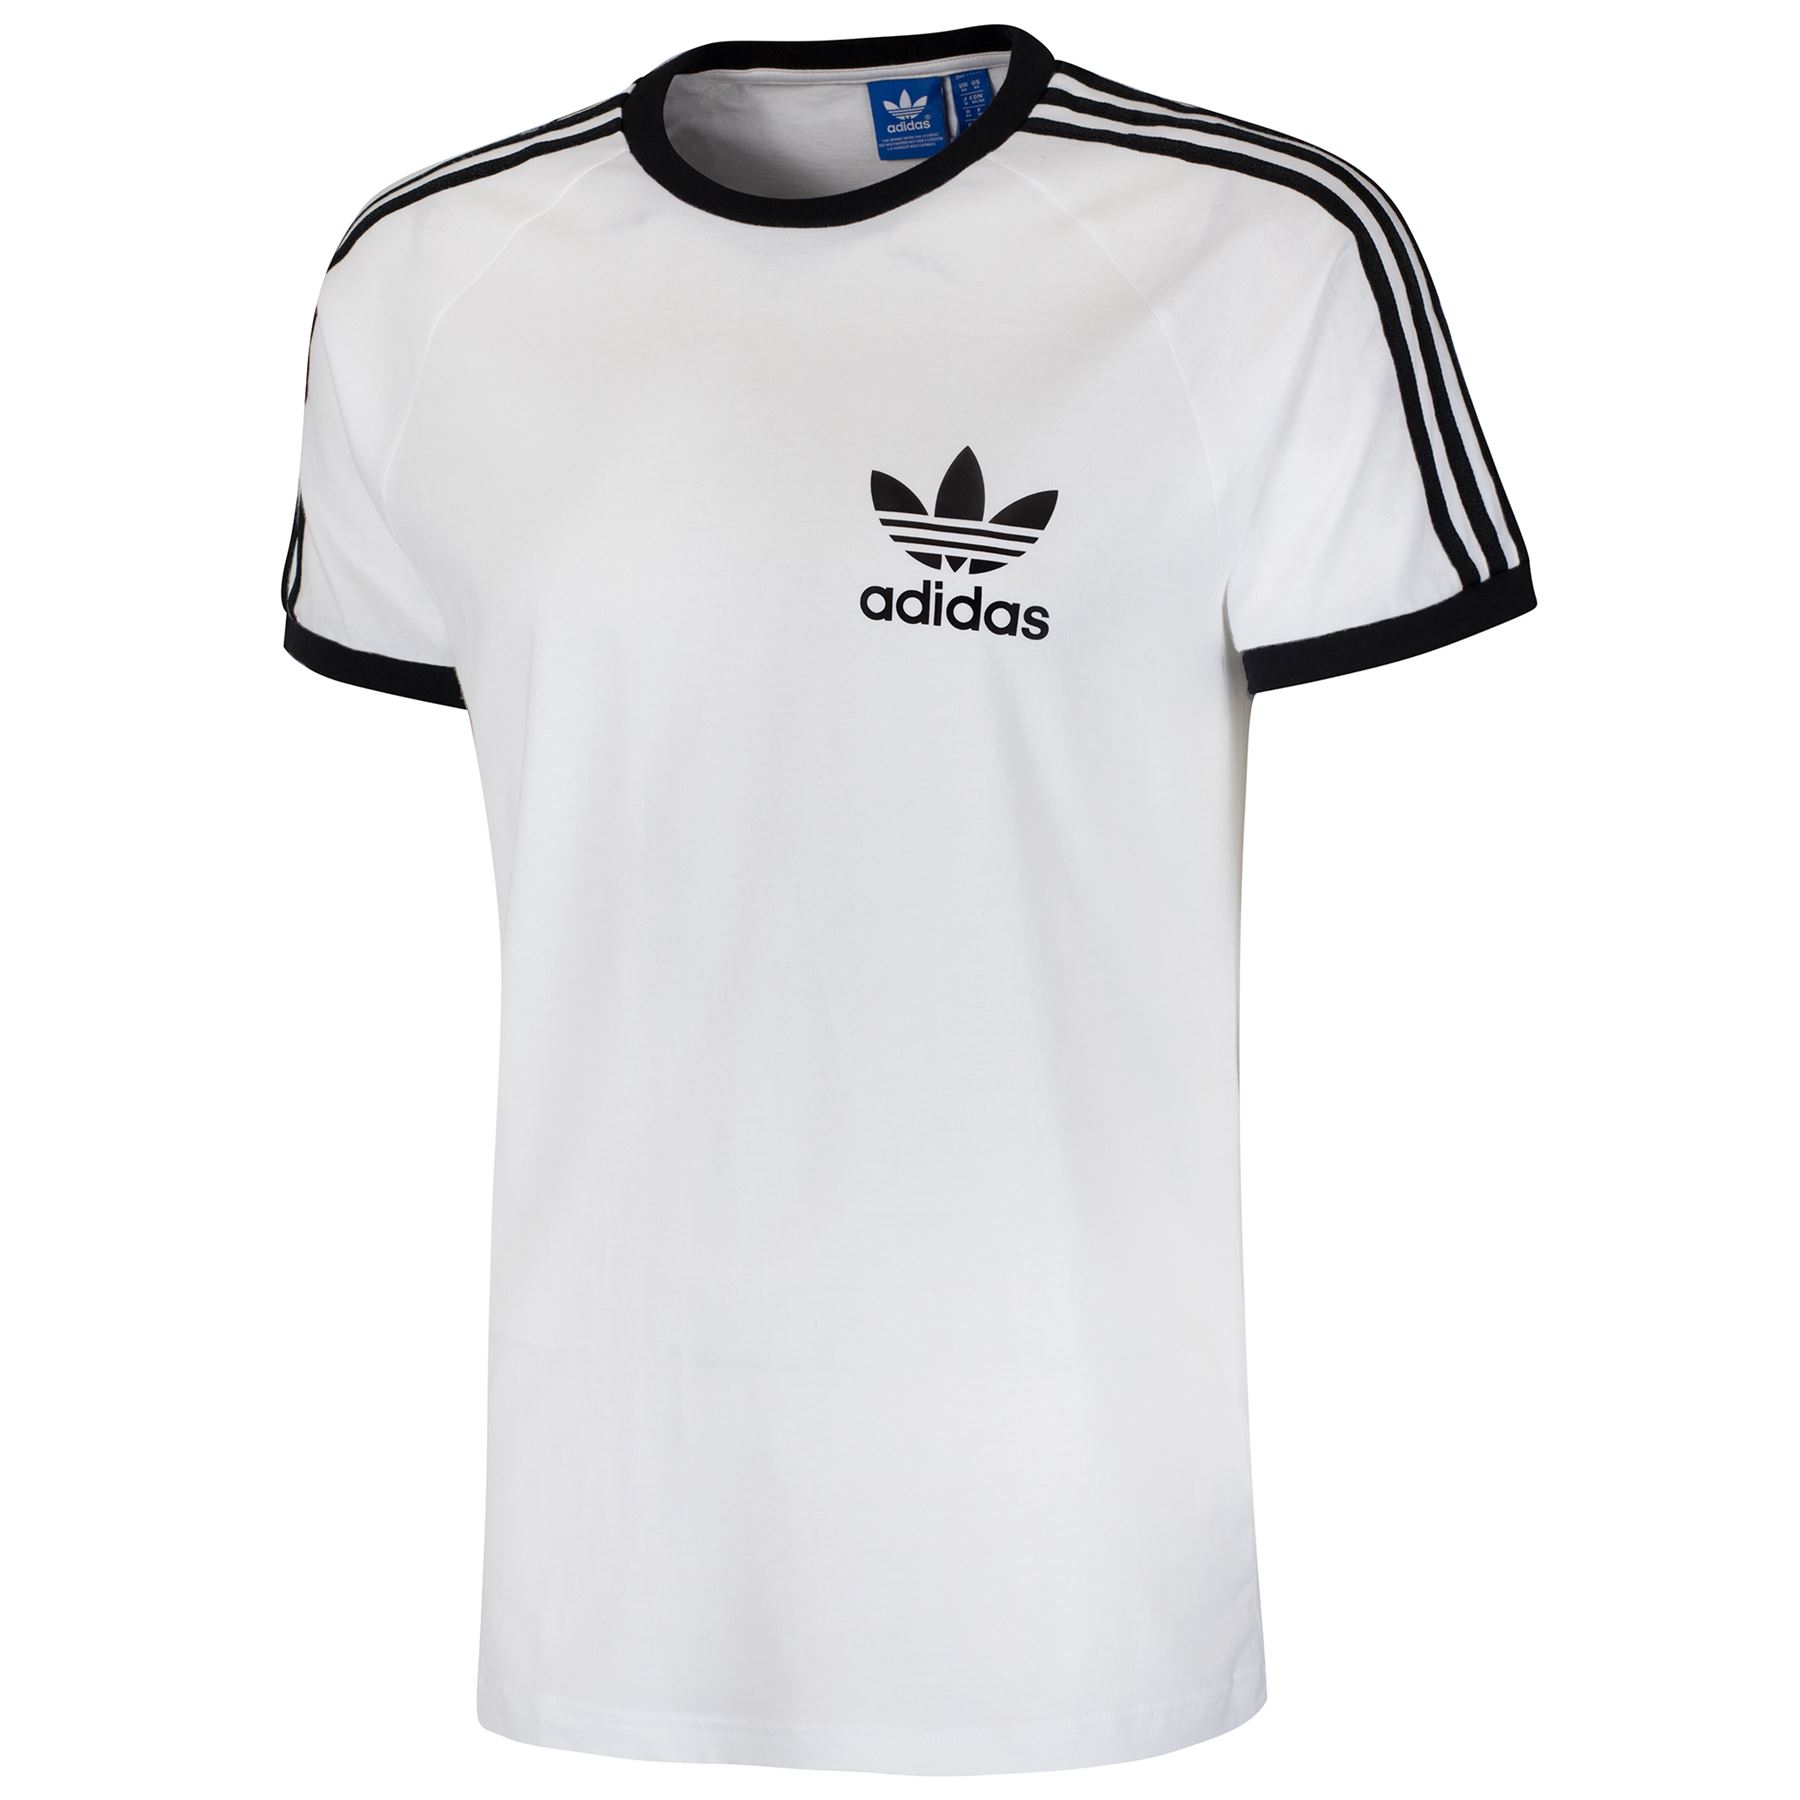 adidas t shirt sale mens